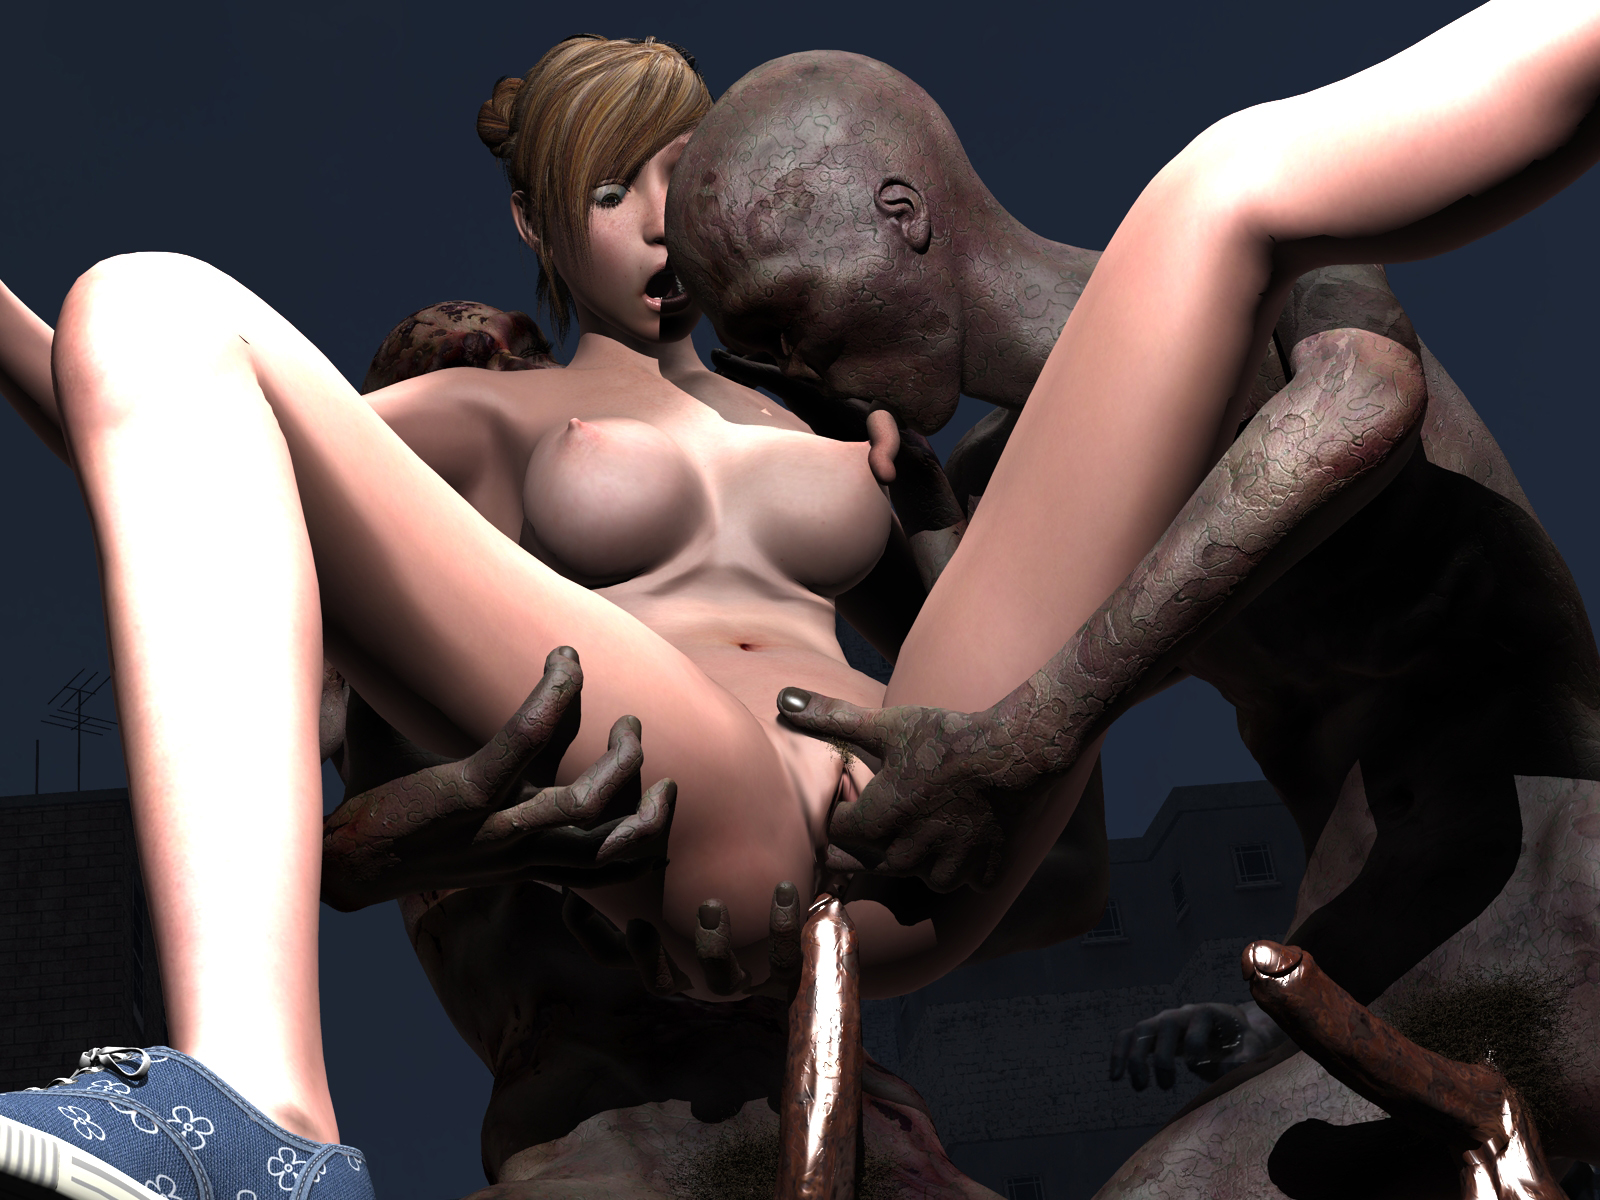 Uncensored 3d hentai monsters nude videos